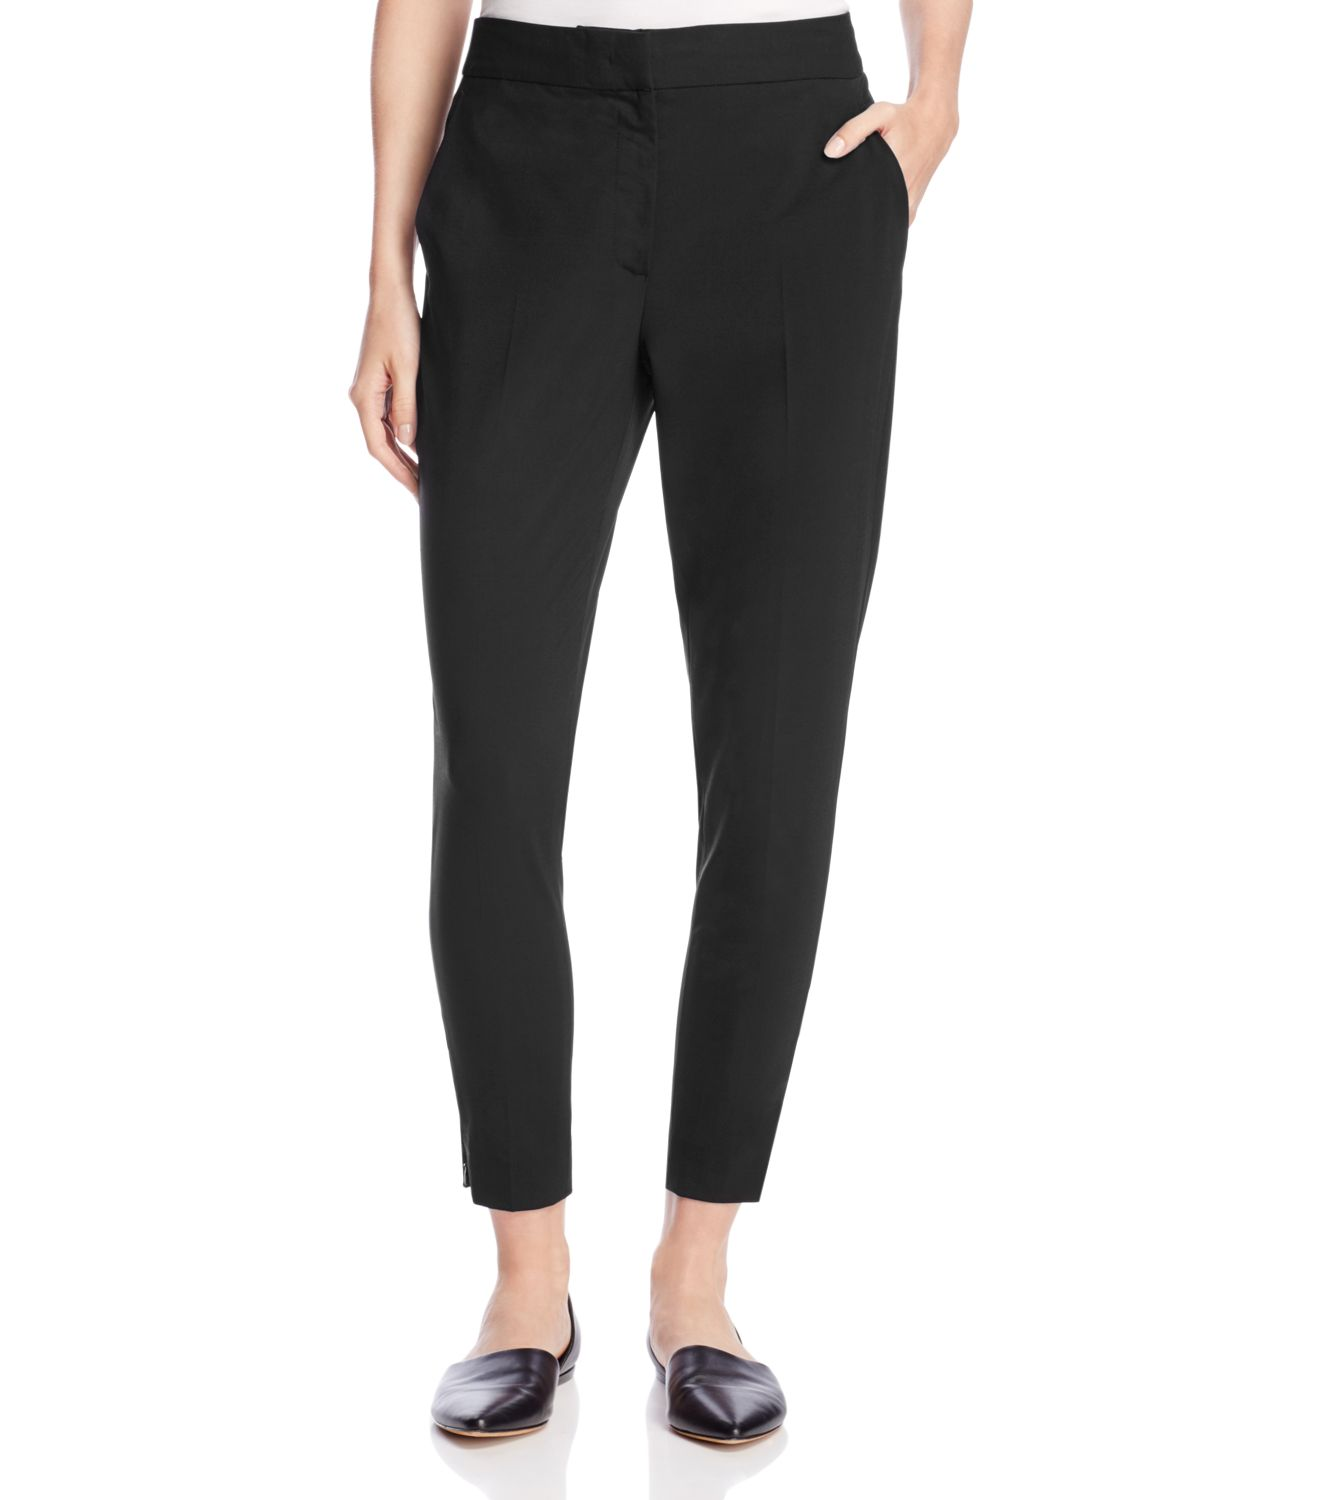 DKNY New Deep Black Womens Size 4 Tailored Relaxed Cropped Wool Pants by Dkny